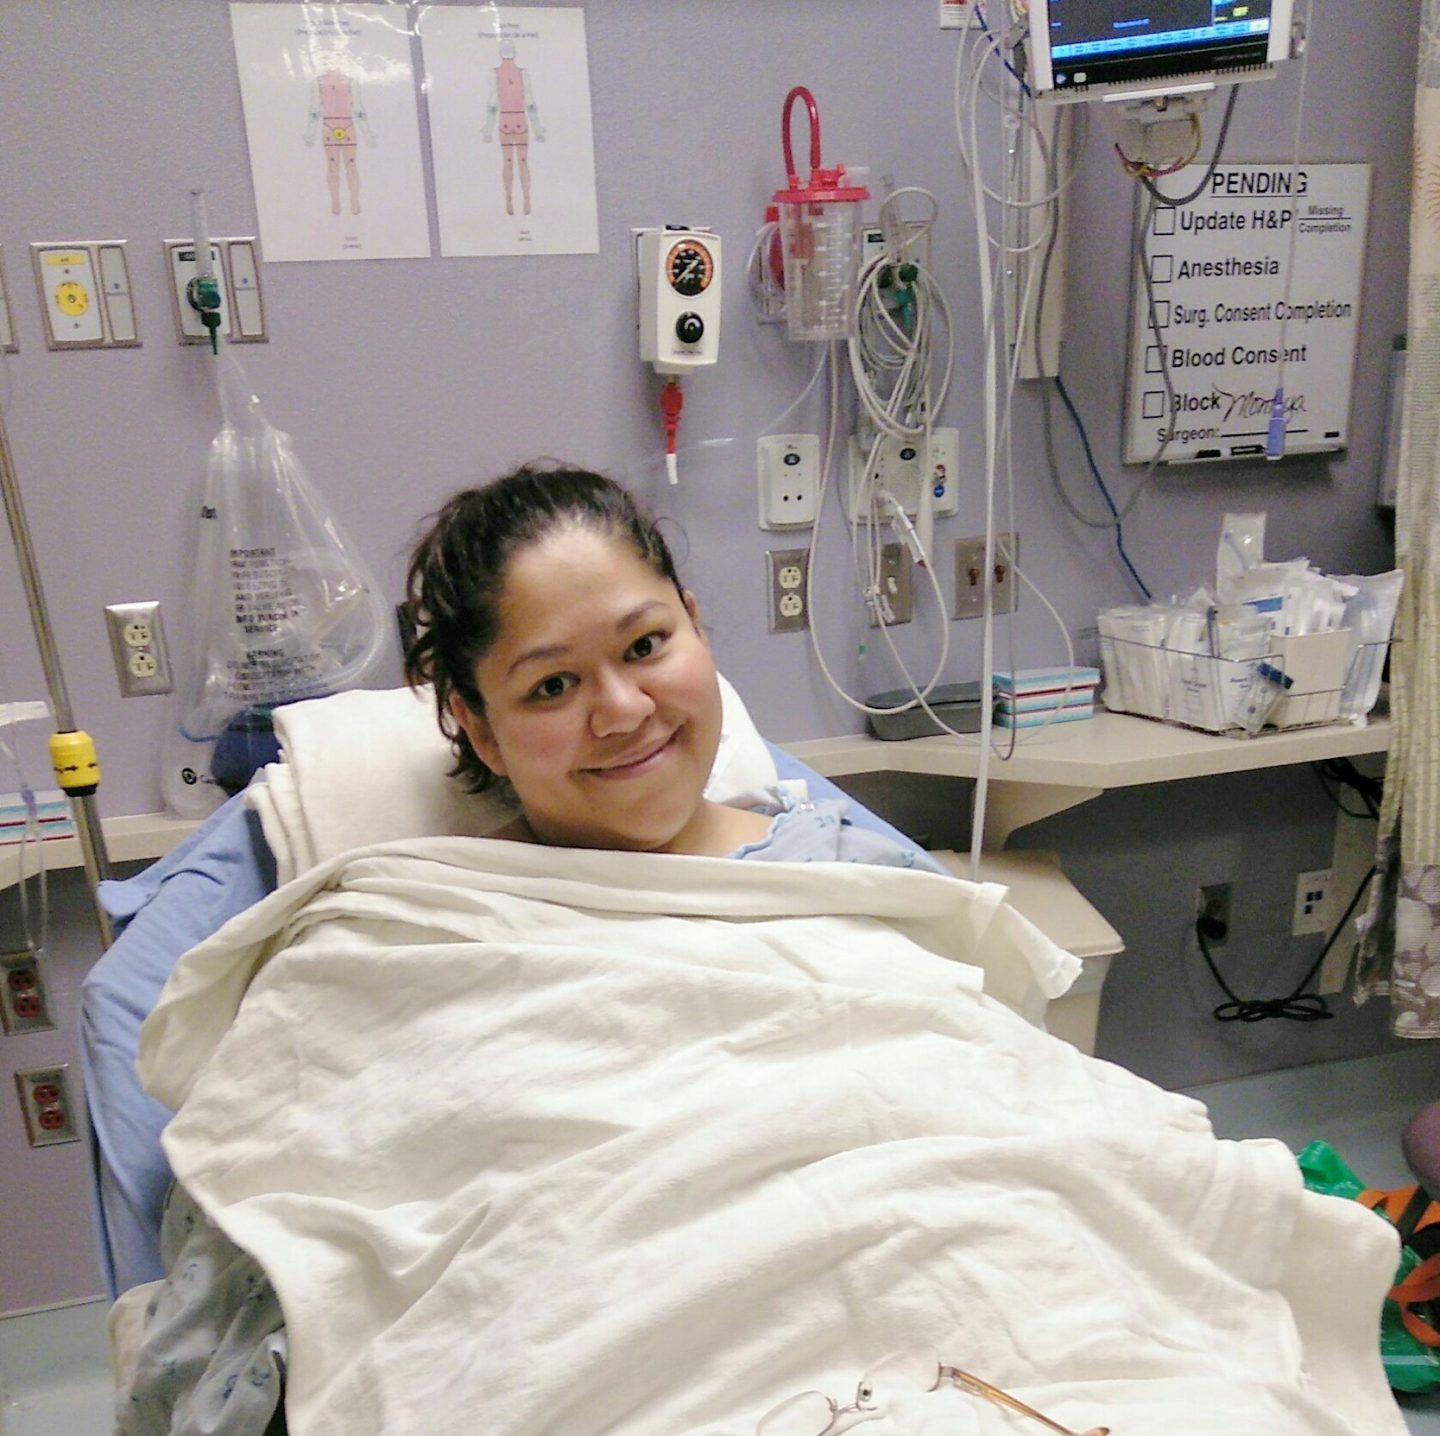 My health: Picture of me in a hospital bed awaiting my surgery